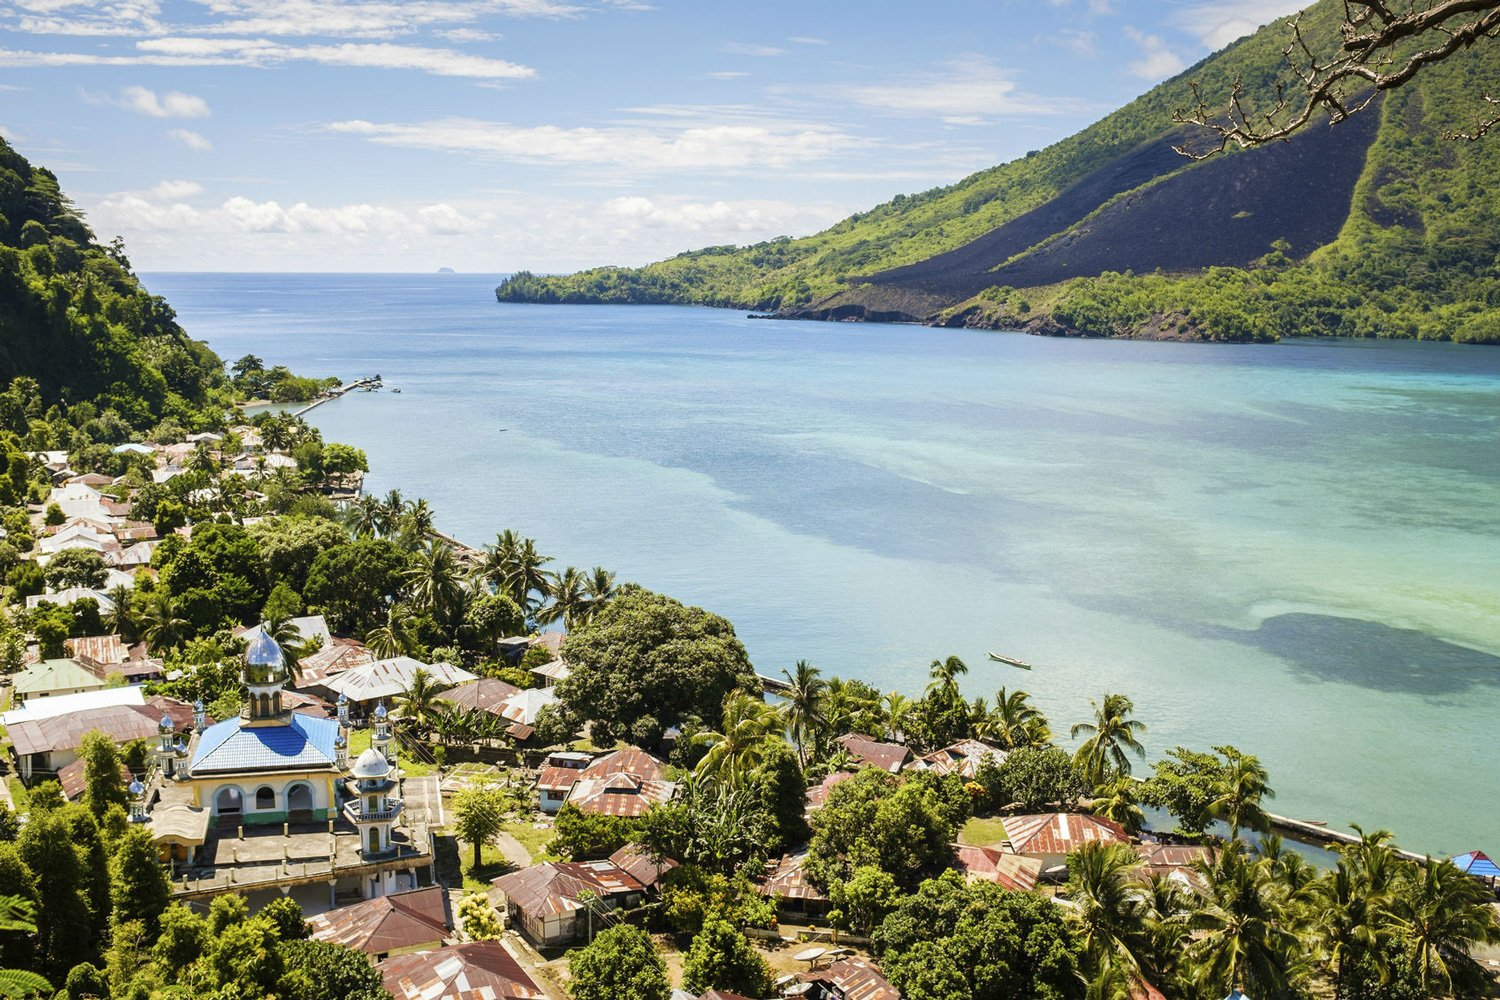 The Banda Islands